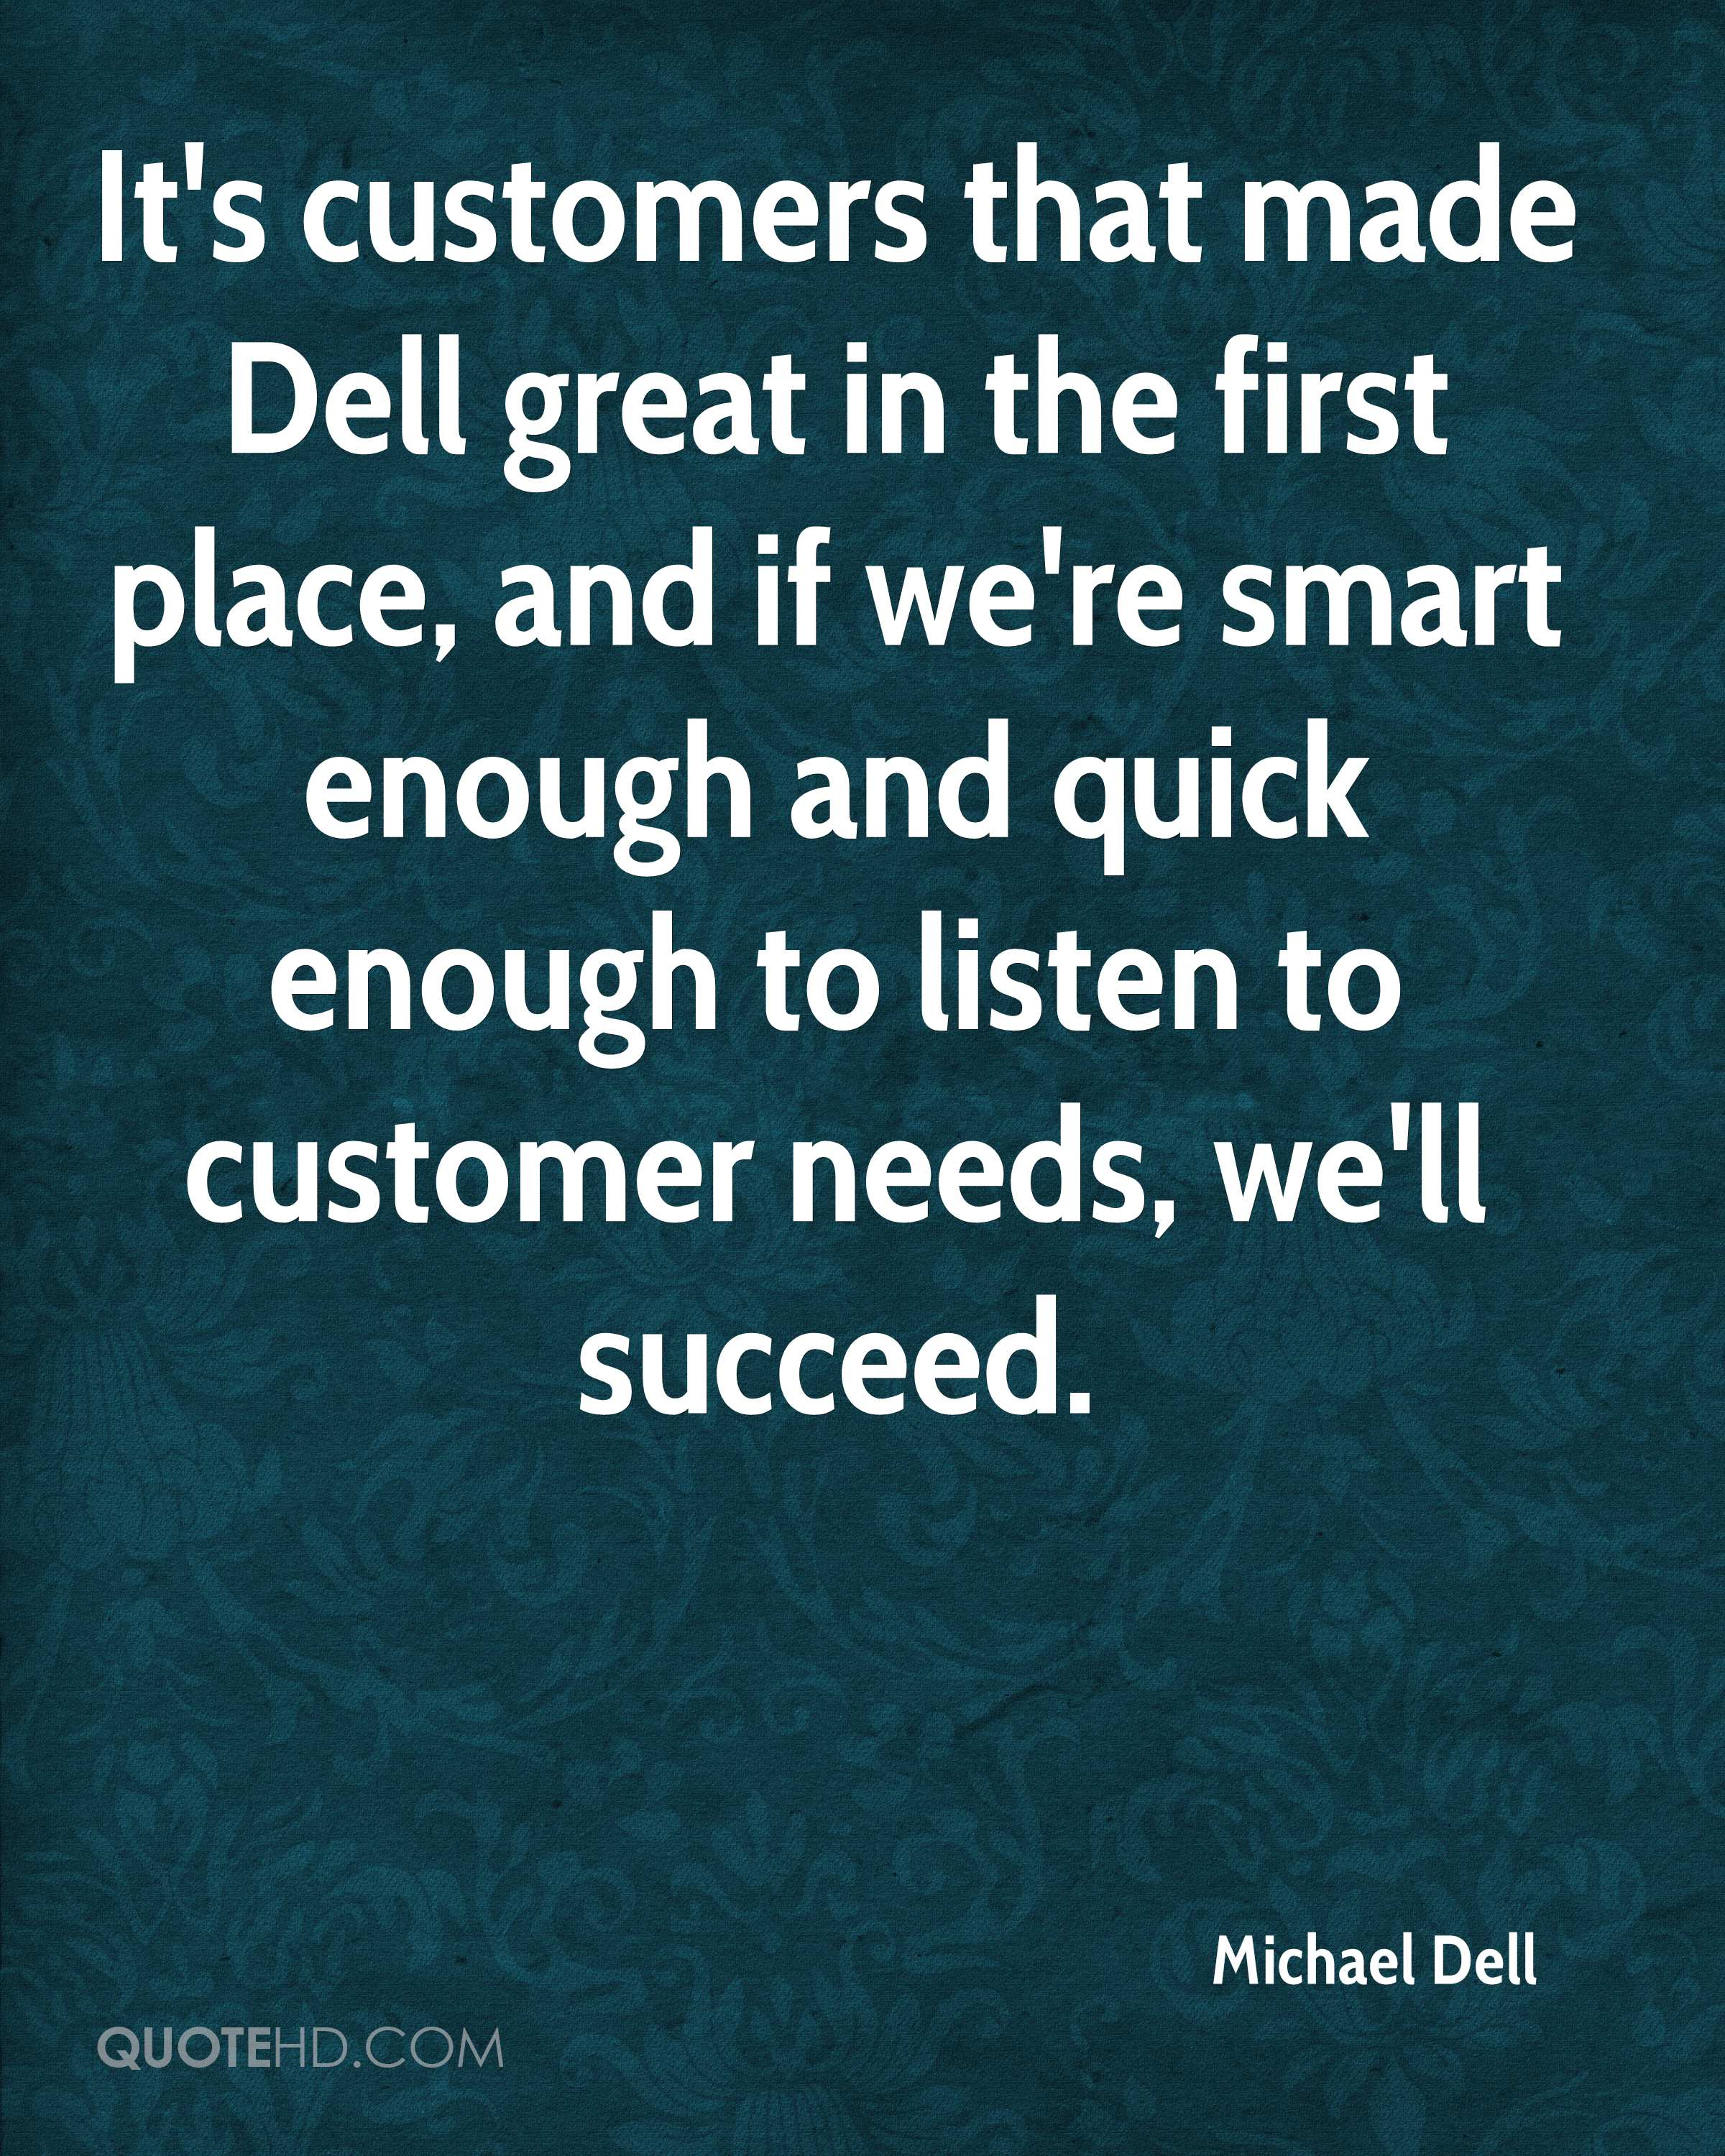 It's customers that made Dell great in the first place, and if we're smart enough and quick enough to listen to customer needs, we'll succeed.